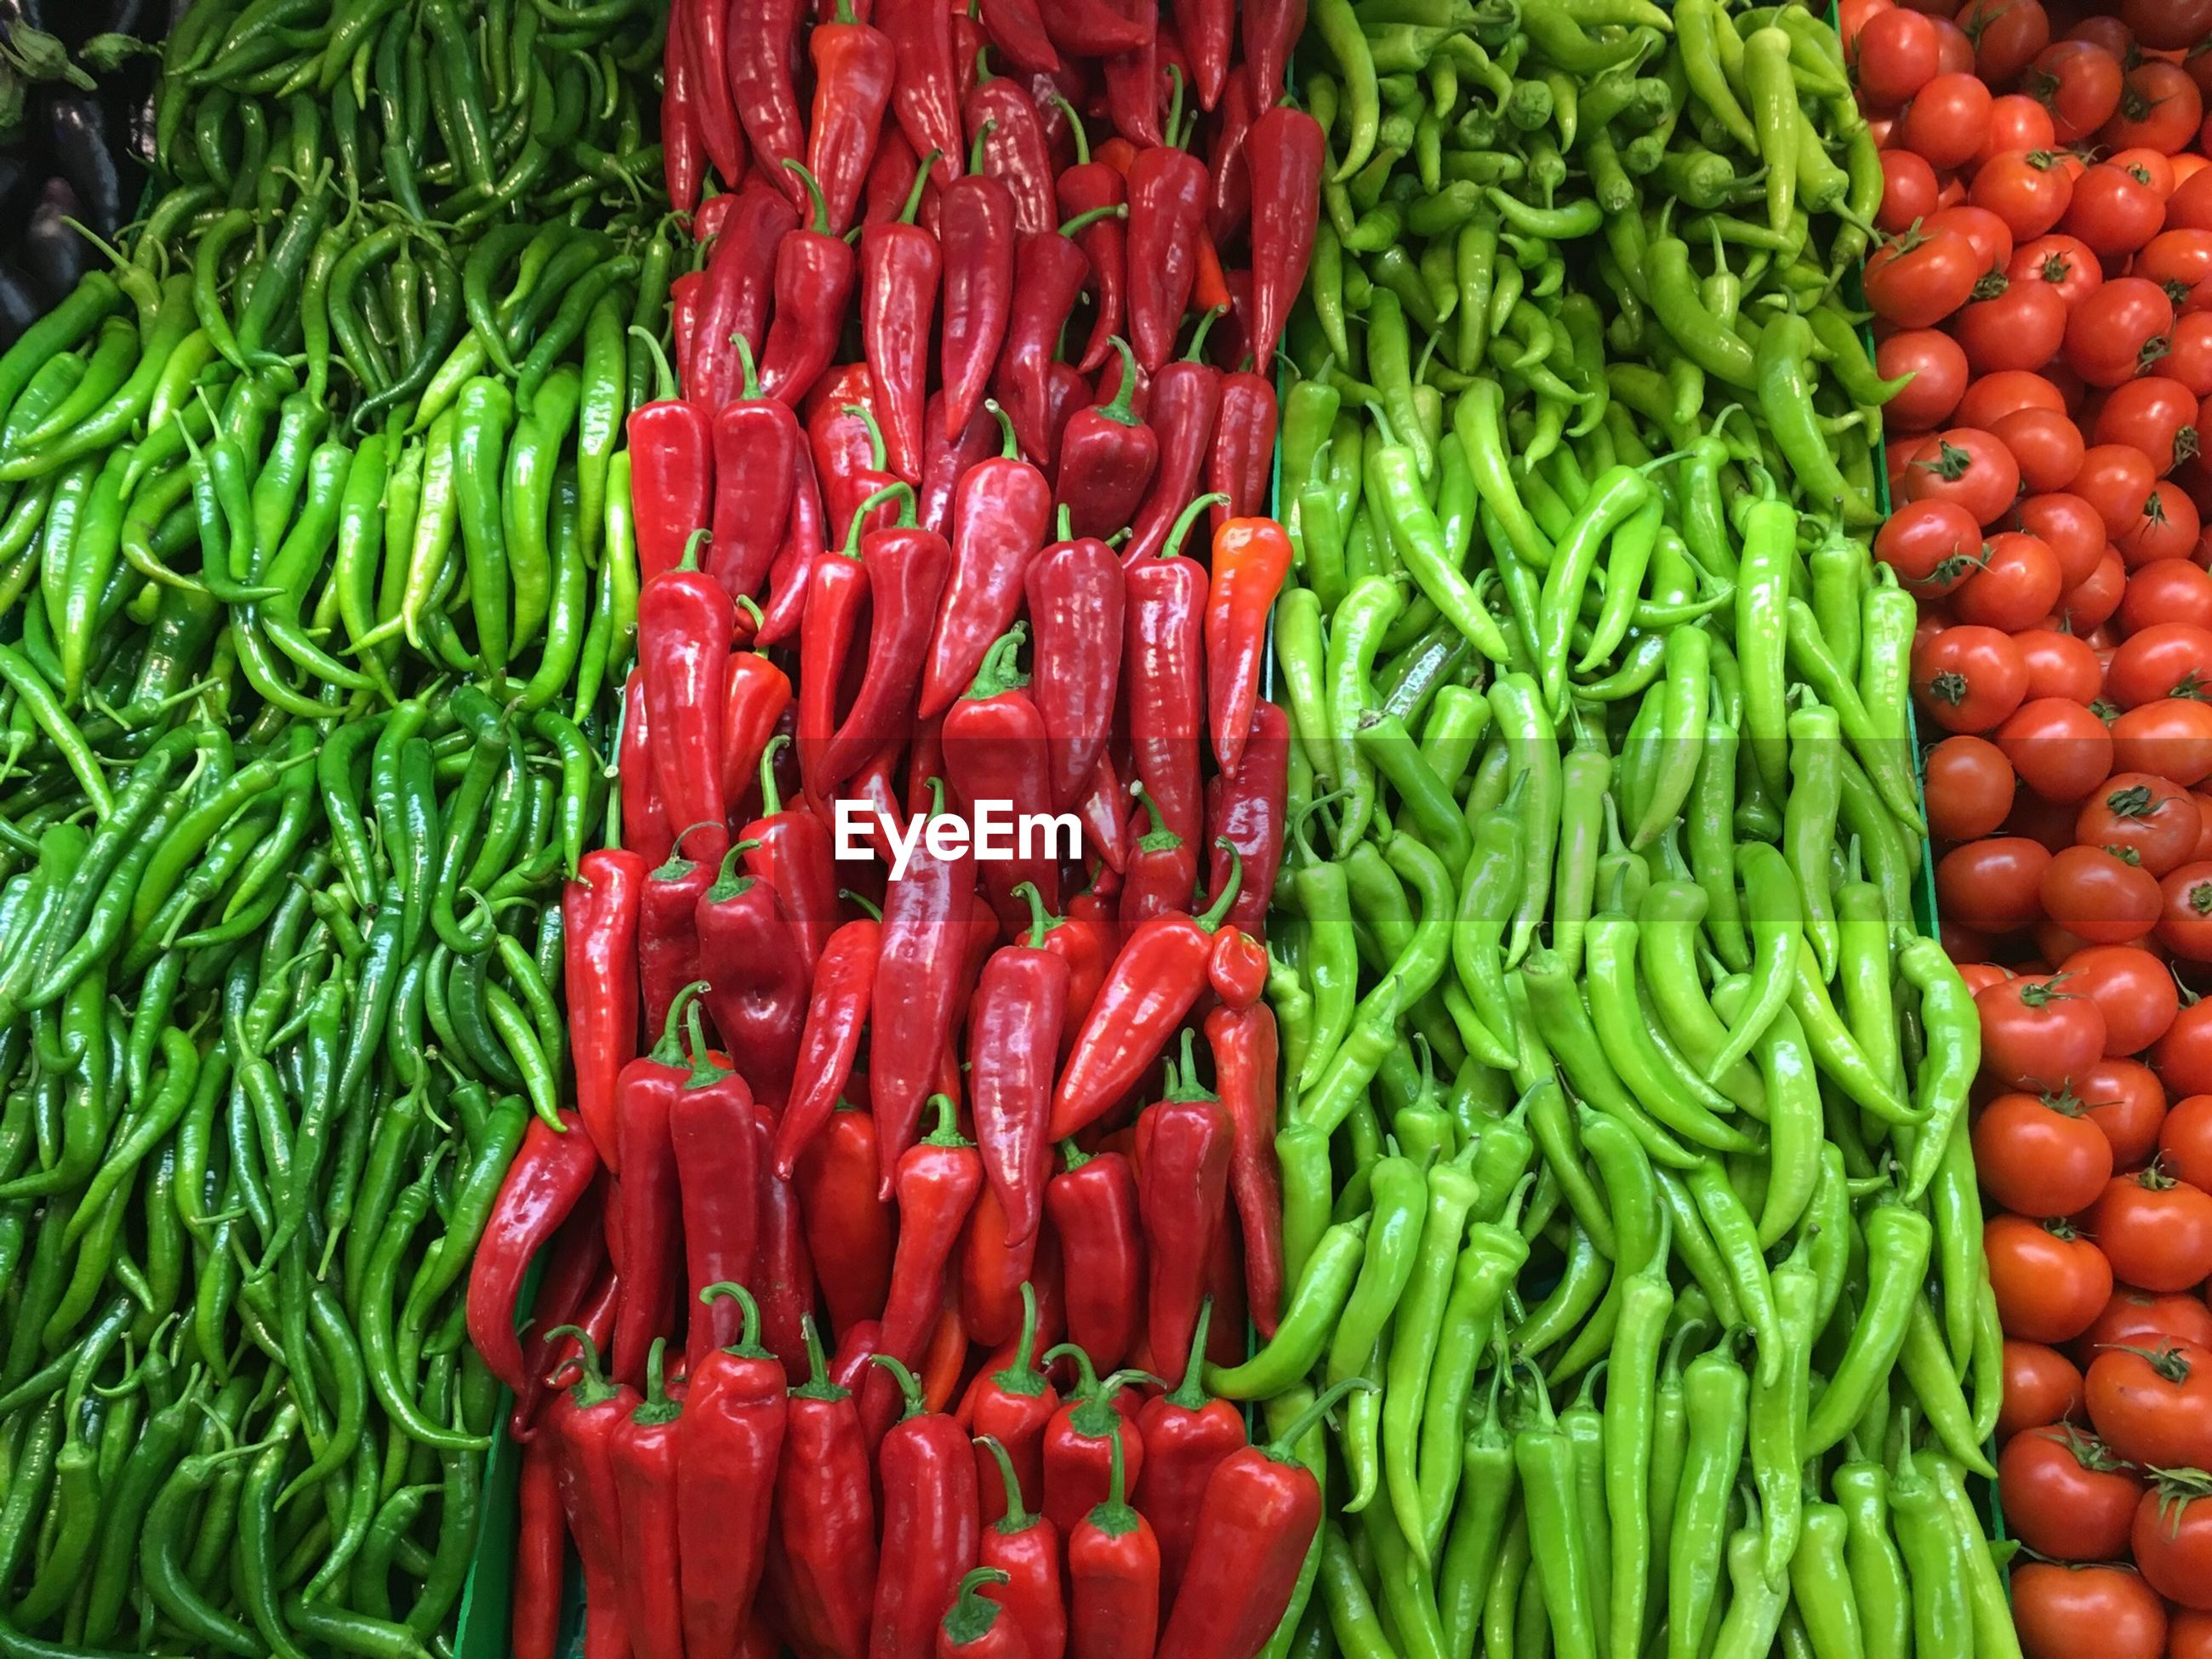 freshness, food and drink, healthy eating, food, red, vegetable, for sale, abundance, market, market stall, large group of objects, retail, full frame, green color, backgrounds, raw food, organic, choice, still life, stack